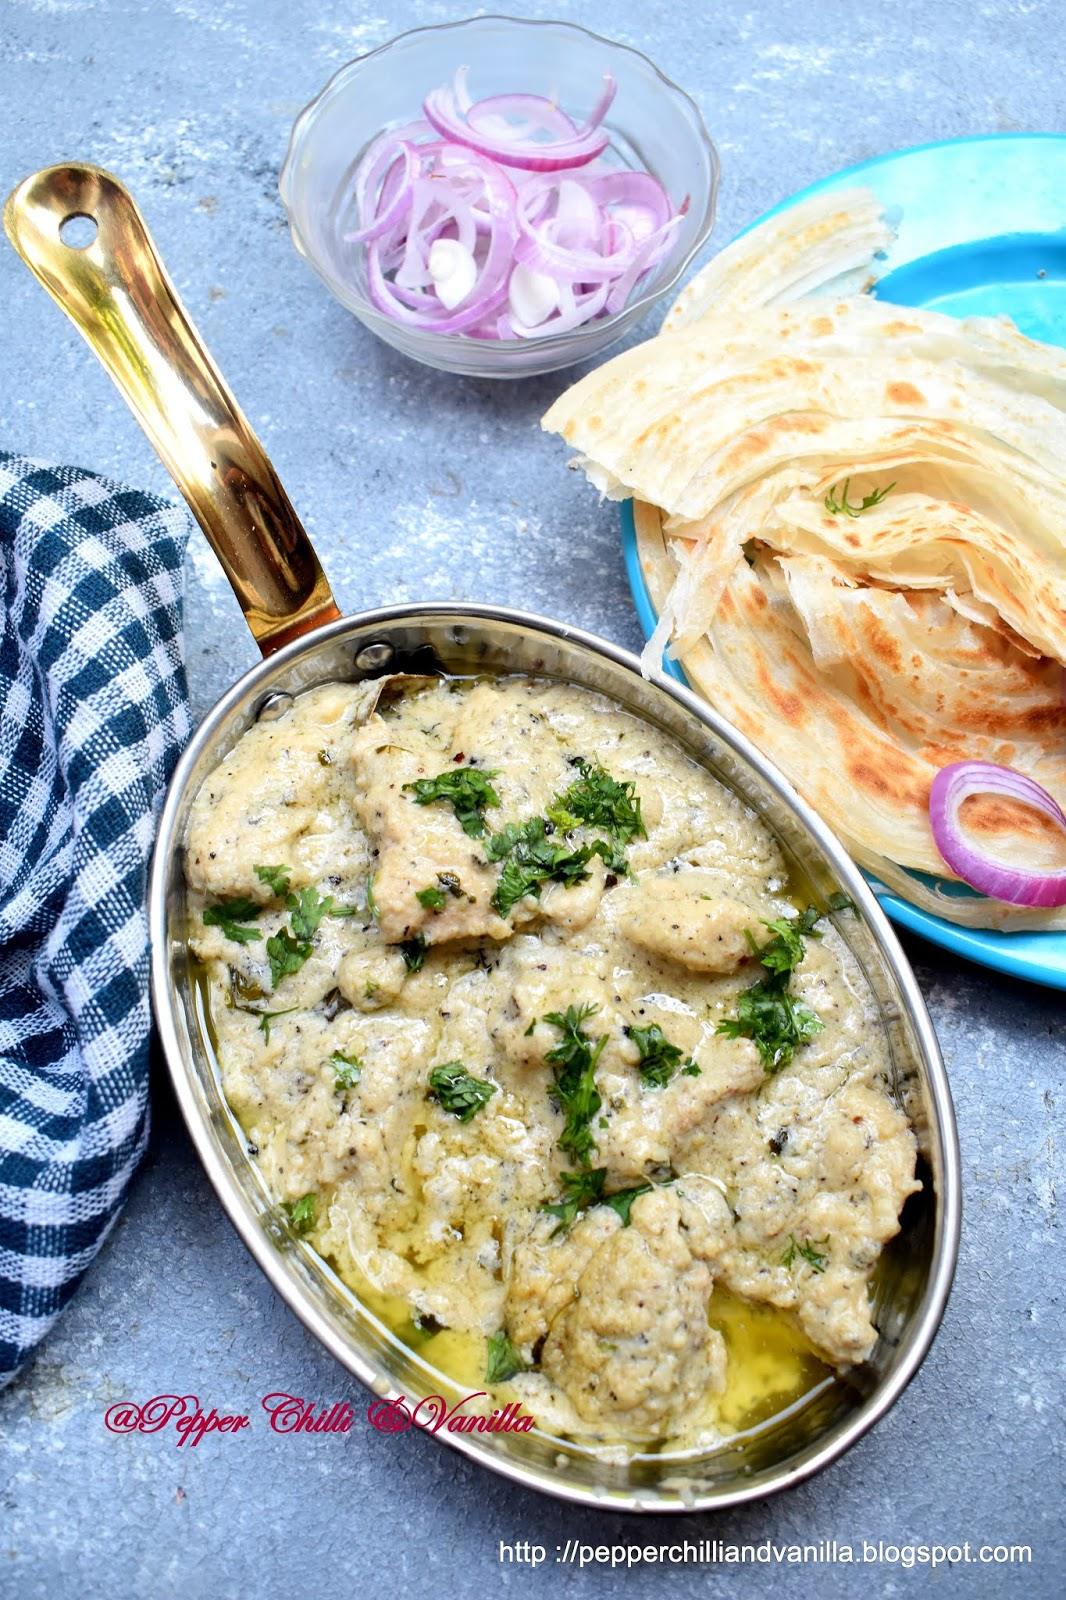 cream chicken recipe,malai chicken ,chawla chicken